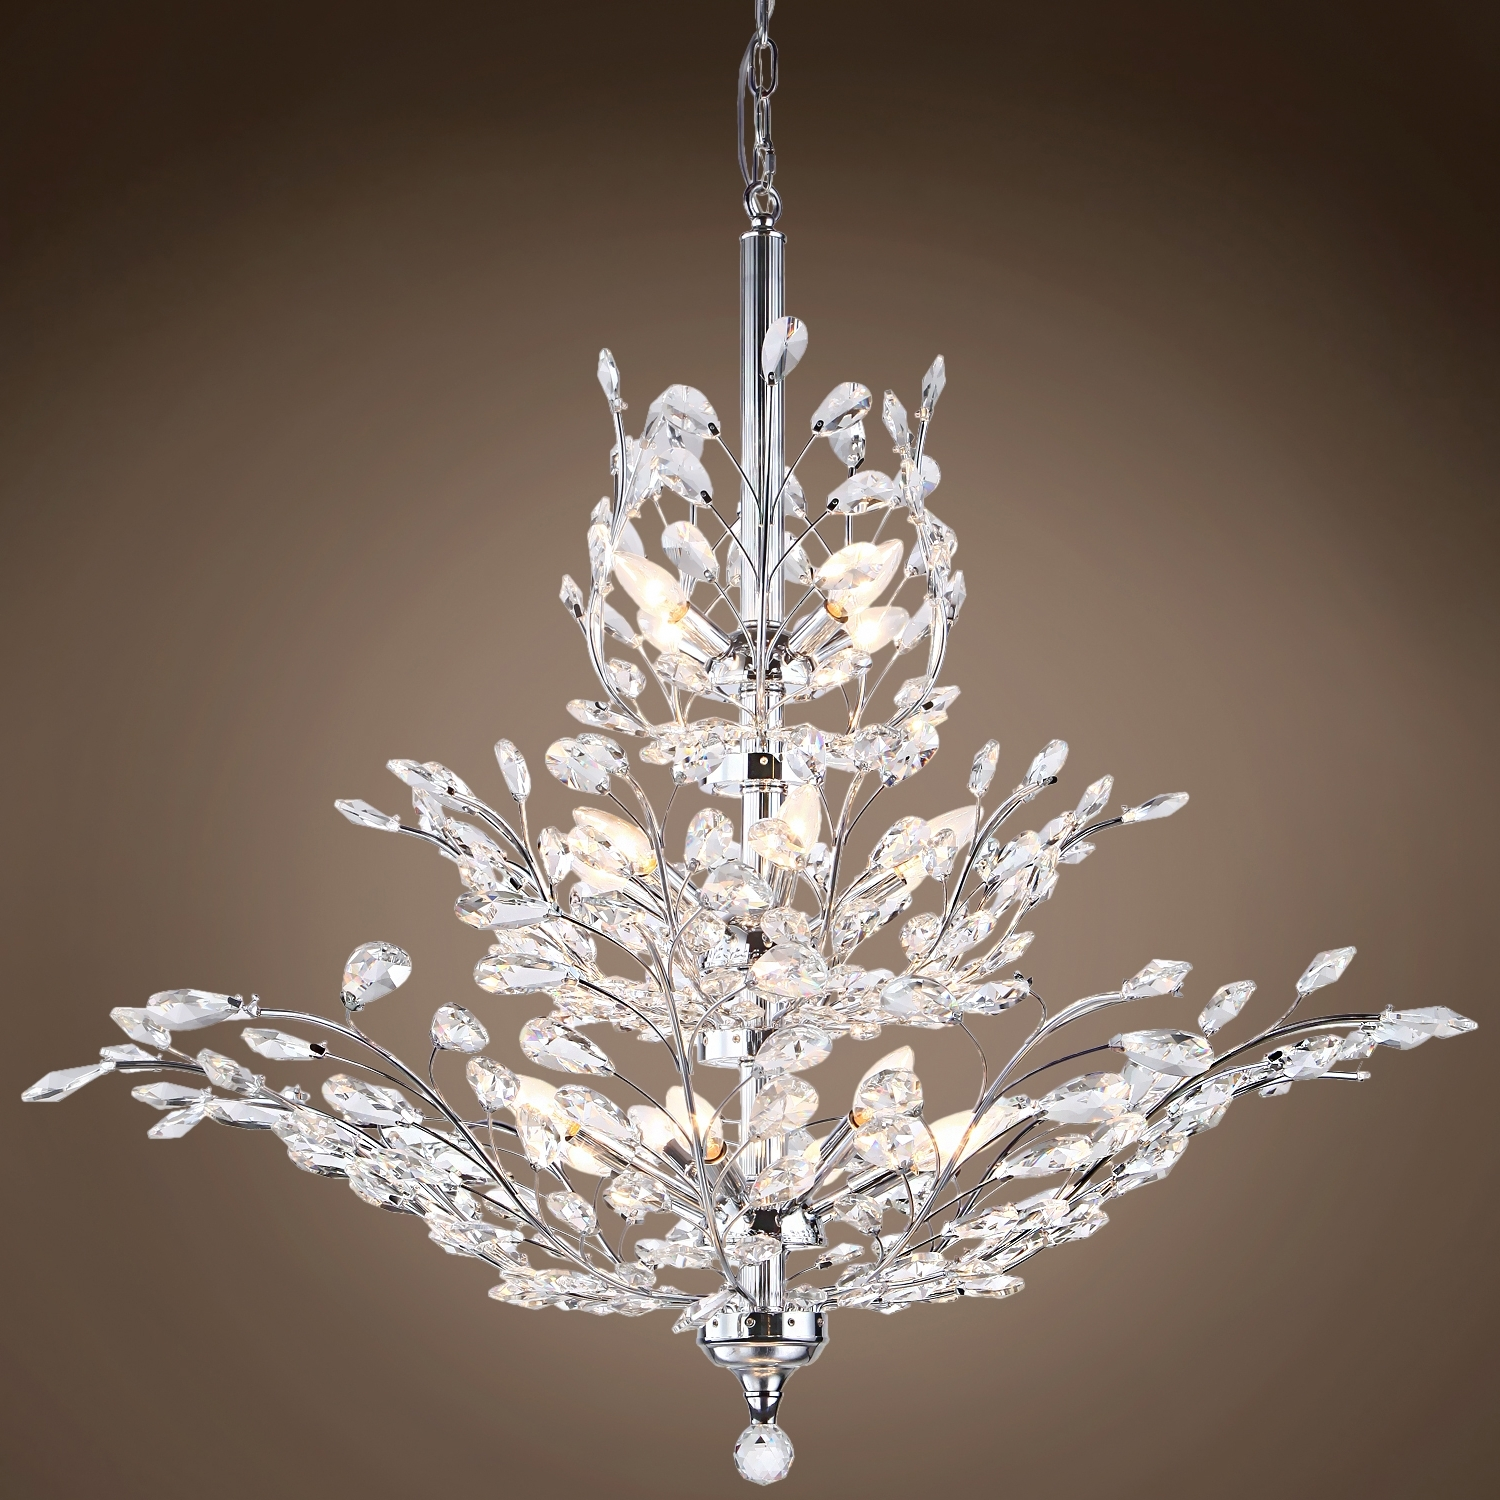 Joshua Marshal 700109 Branch Of Light 13 Light Chrome Chandelier Throughout Well Liked Branch Crystal Chandelier (Gallery 5 of 20)